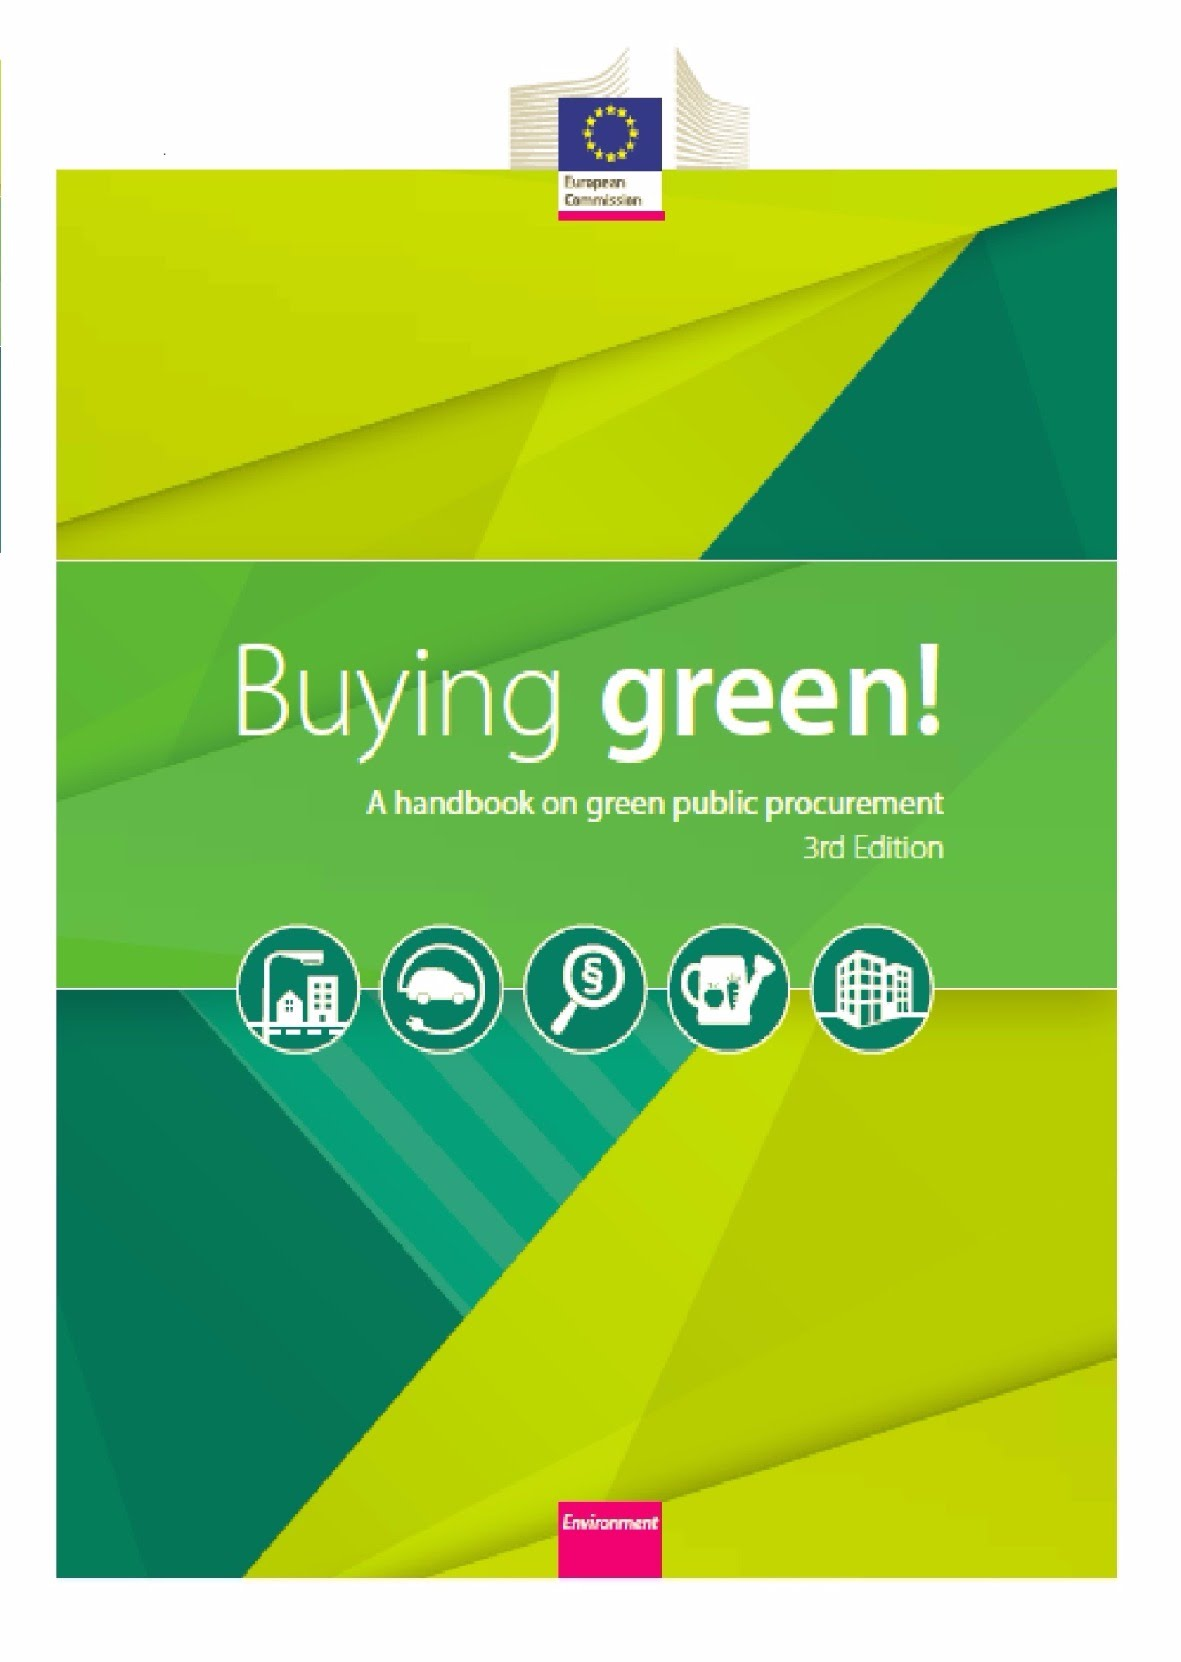 Buying green! A handbook on green public procurement 3rd Edition